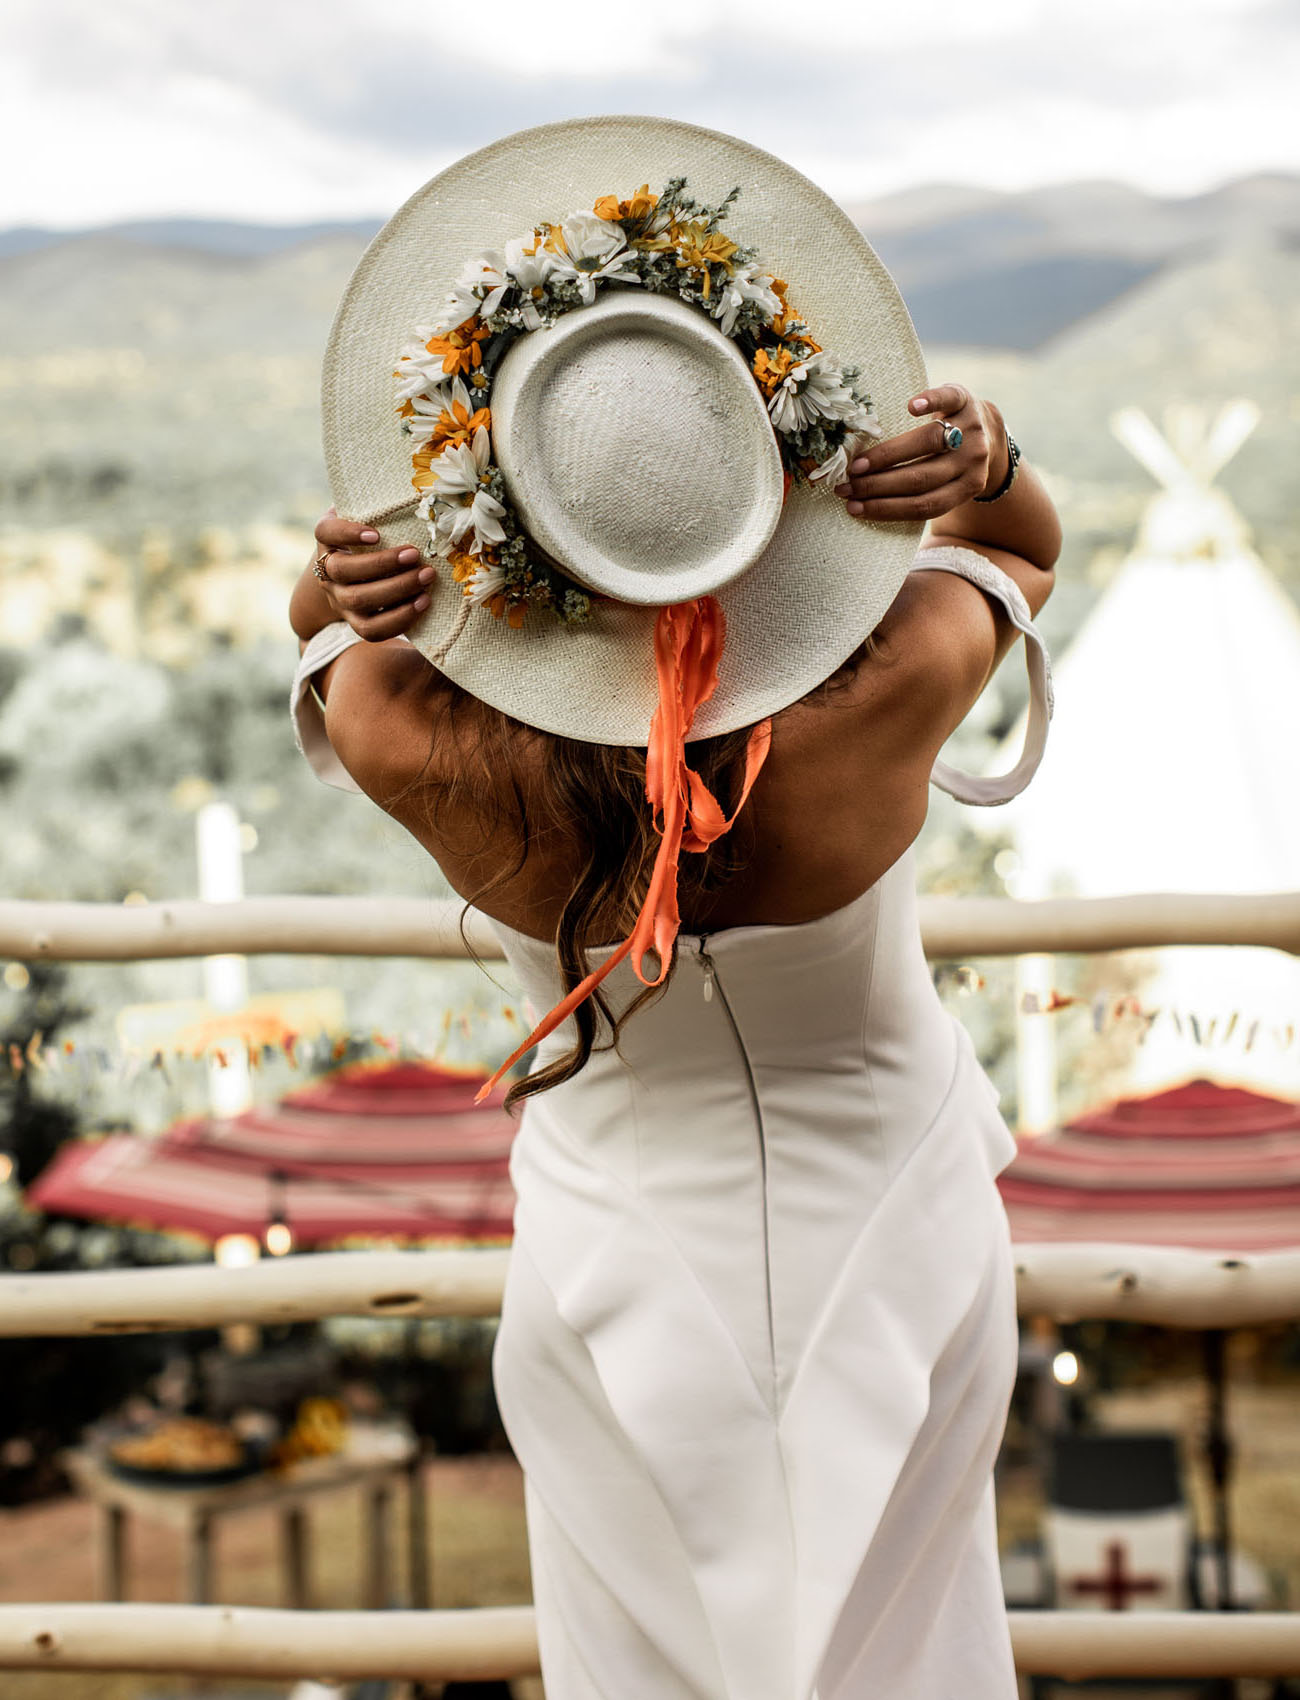 A floral hat is a nice accessory for a boho western bride